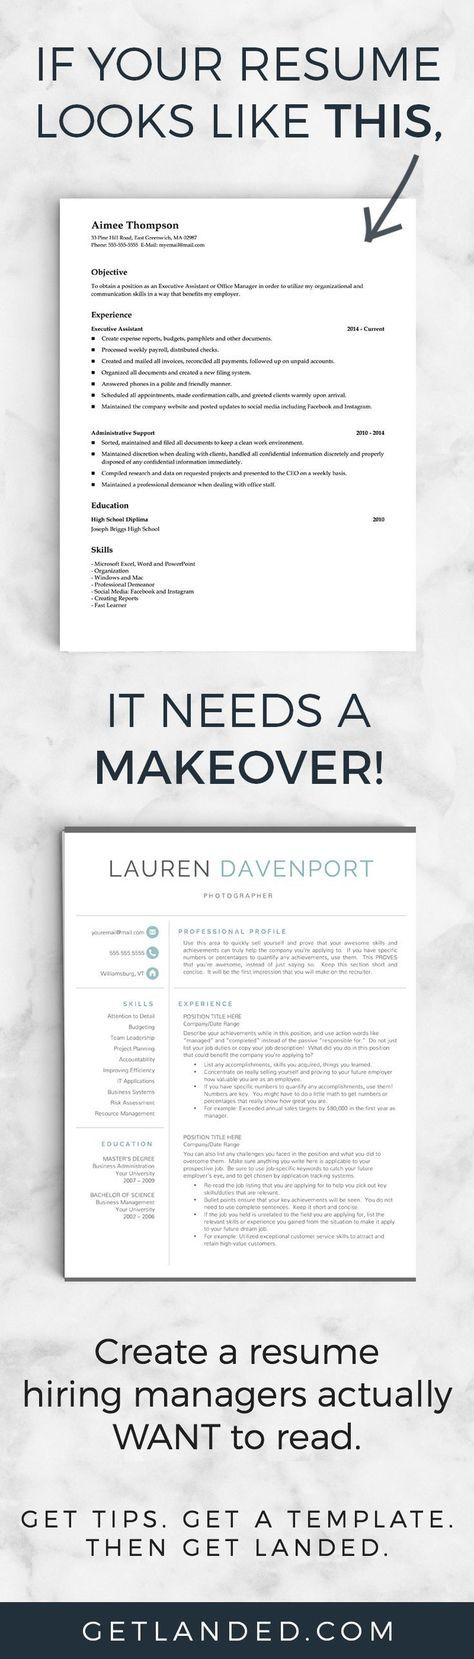 Of Candidates Desperately Need A Resume Makeover Get A Resume